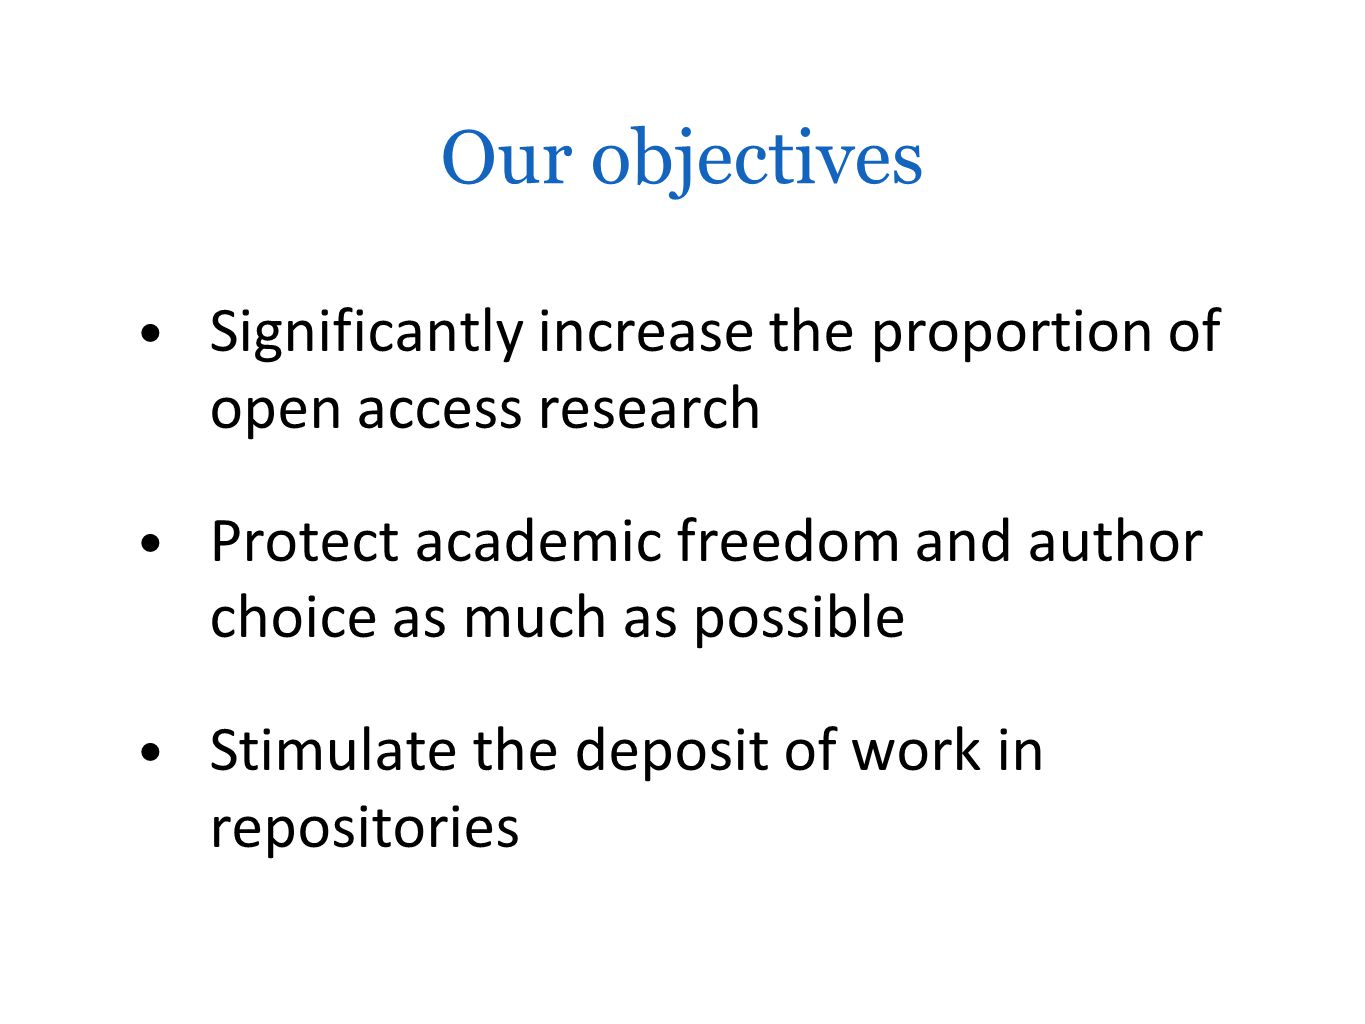 Our objectives Significantly increase the proportion of open access research Protect academic freedom and author choice as much as possible Stimulate the deposit of work in repositories